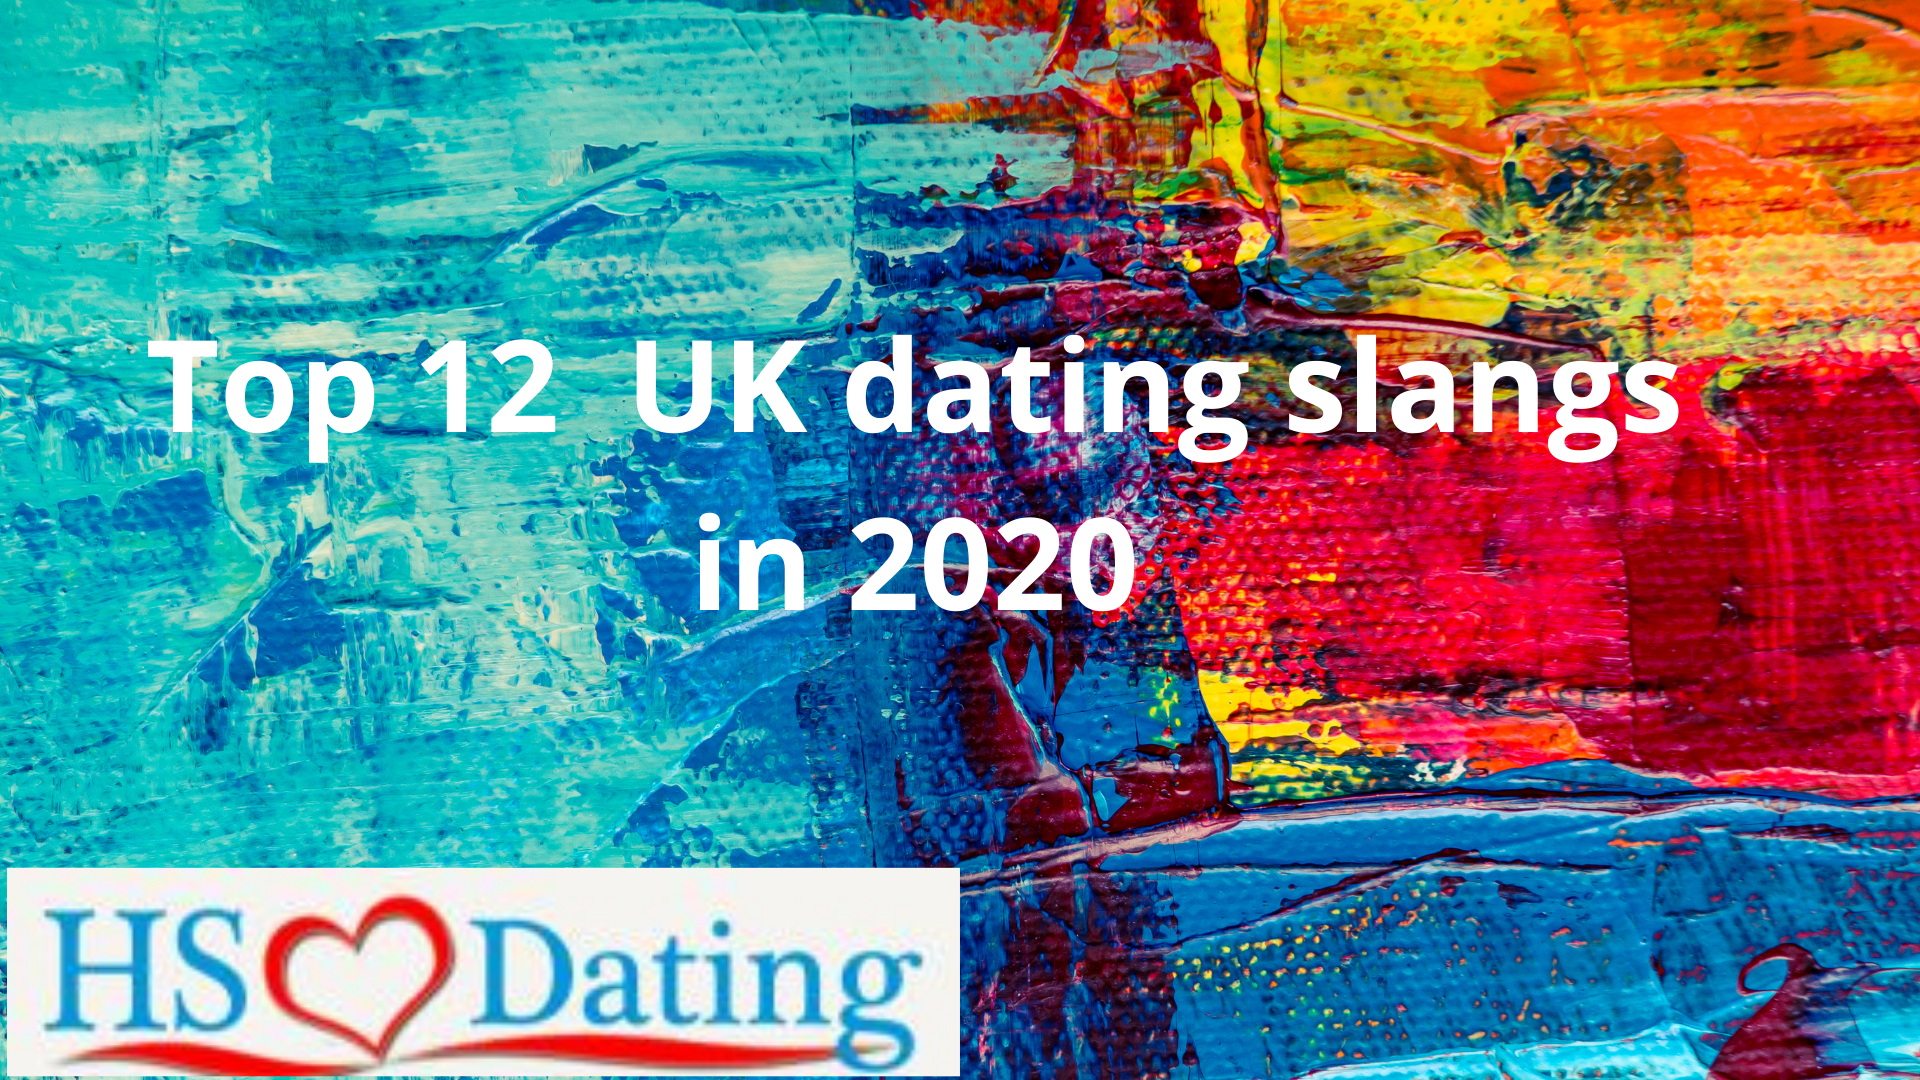 Top 12 UK dating slangs in 2020